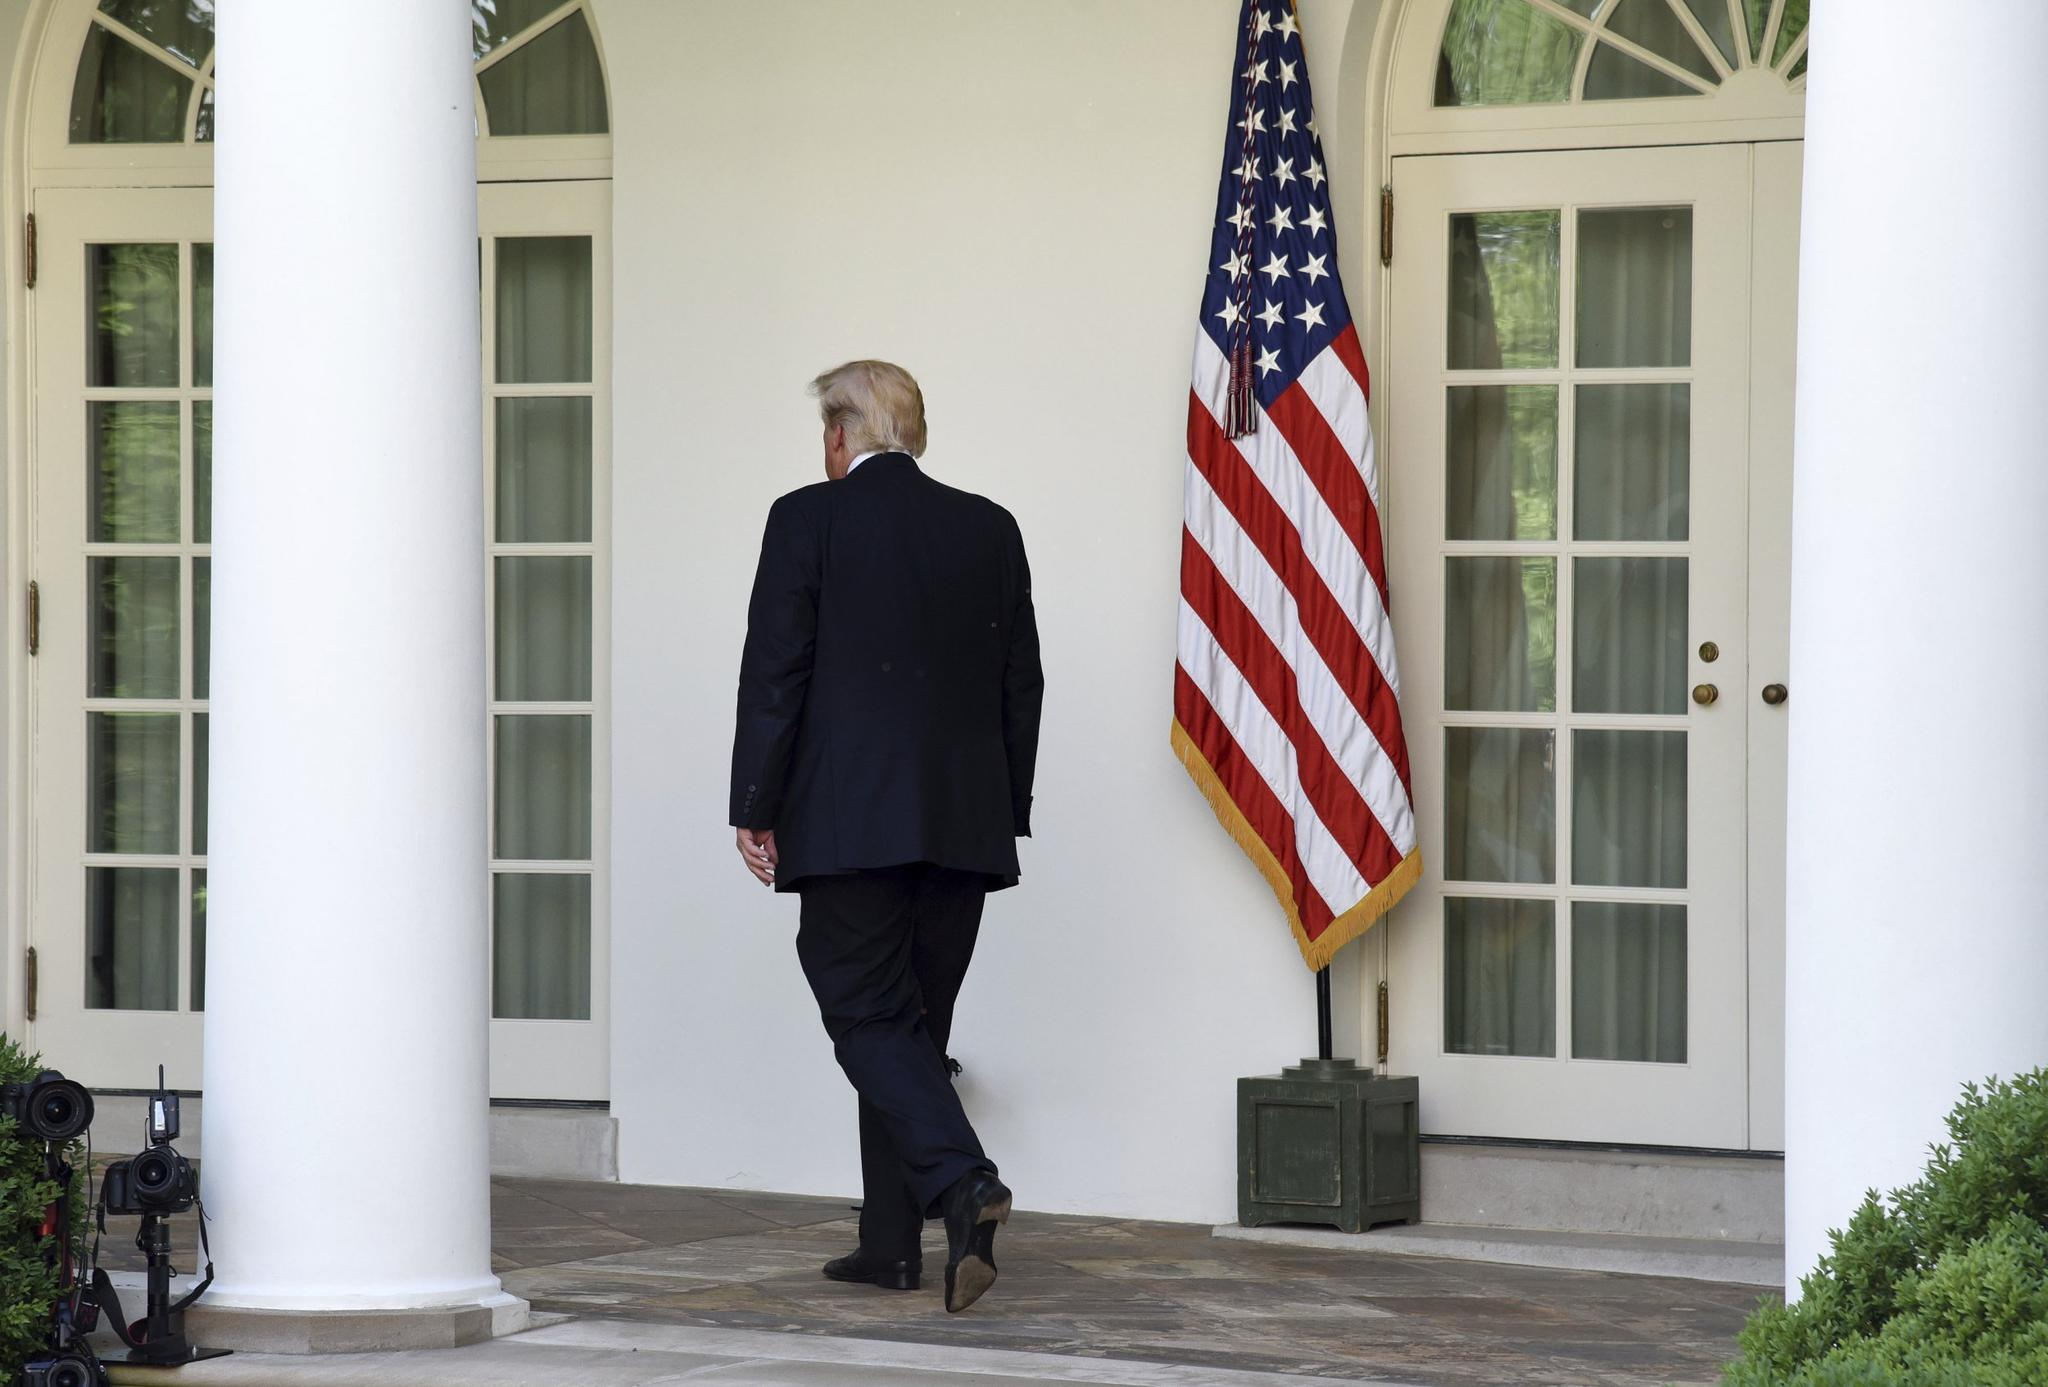 President Donald Trump walks back to the Oval Office after making a statement on The Paris Climate Change Accord in the Rose Garden of the White House, on June 1, 2017 in Washington, DC.